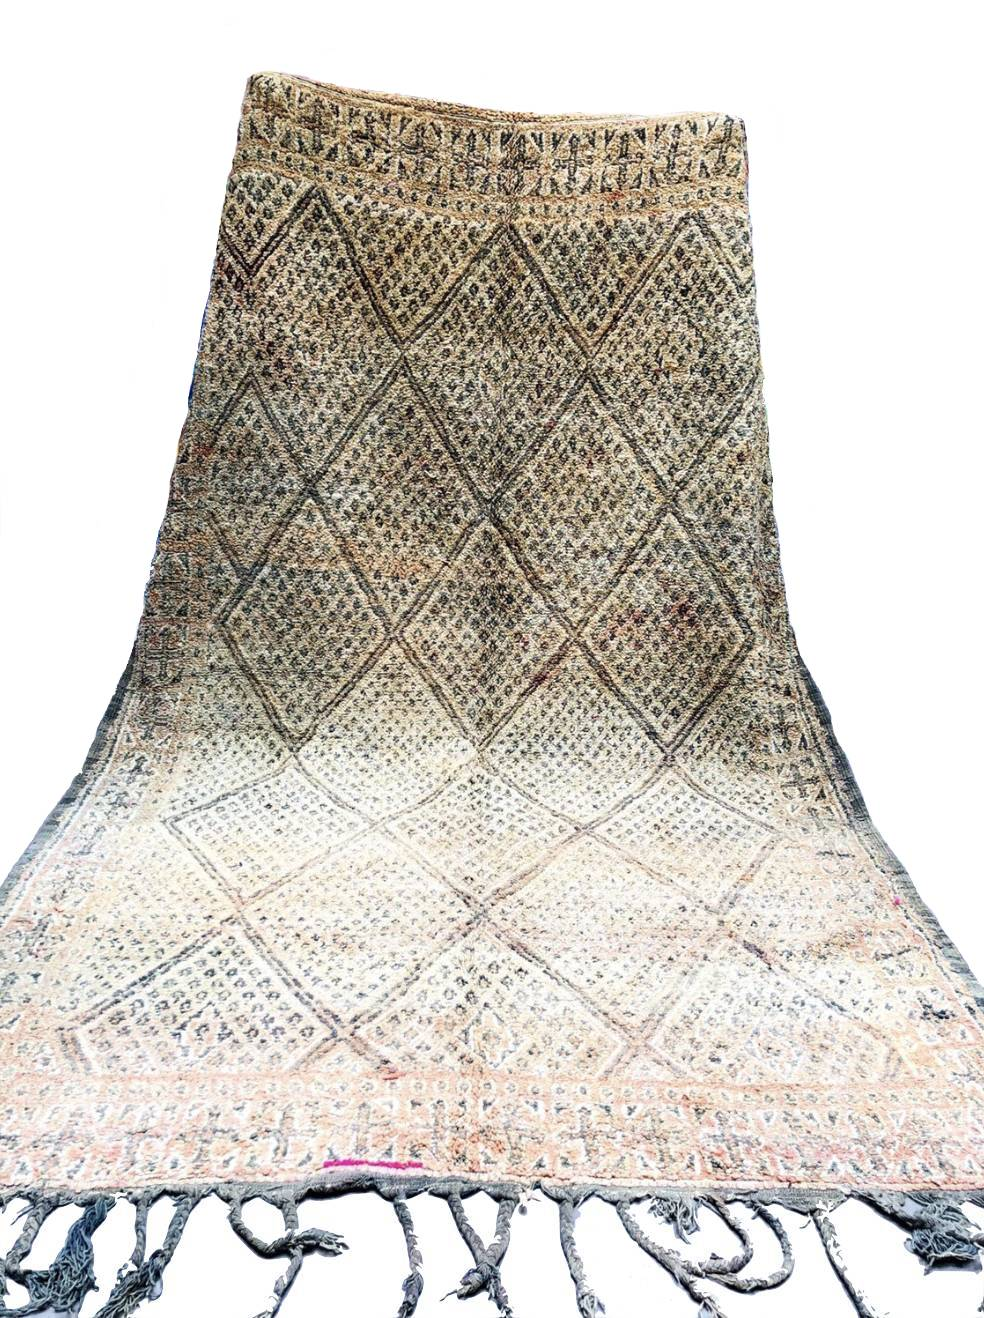 Beni M'Guild Area Rug 10'8